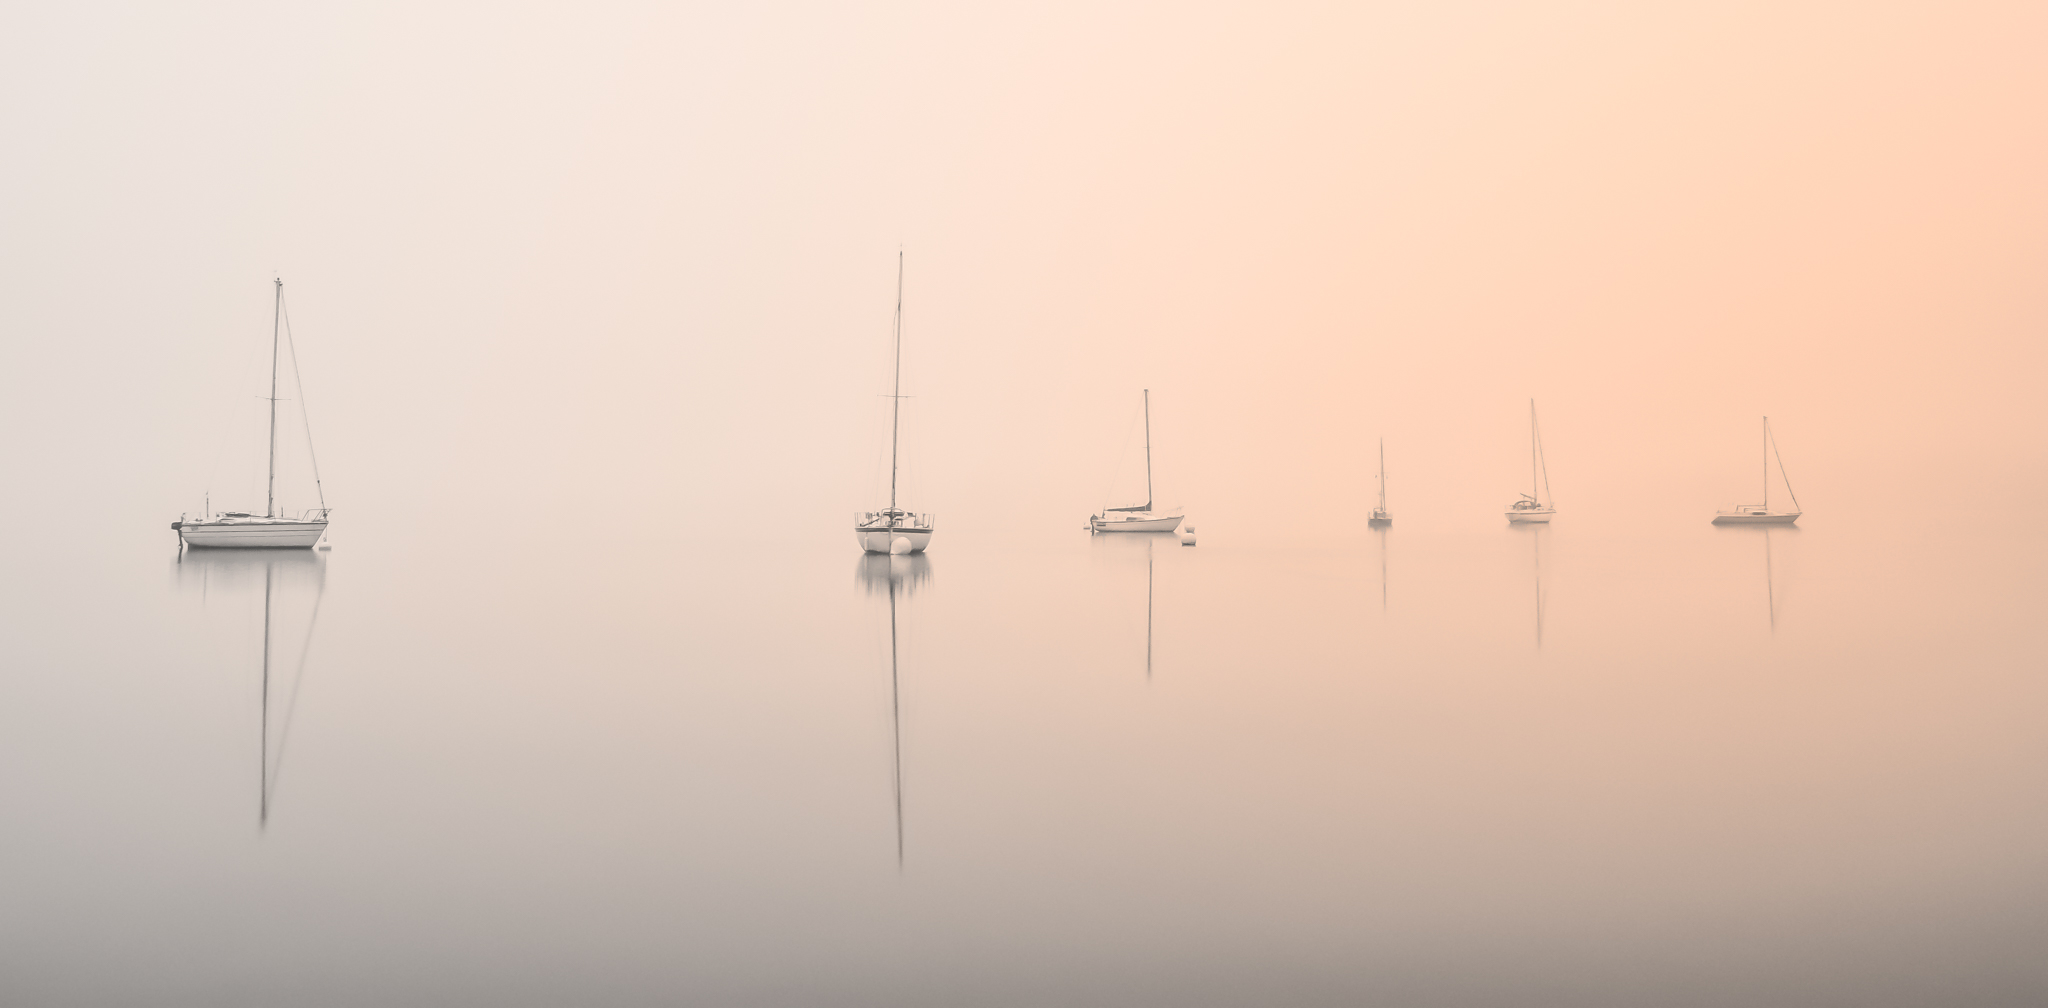 Windermere Morning - Winner of the Olympus Global Photo Contest 2017